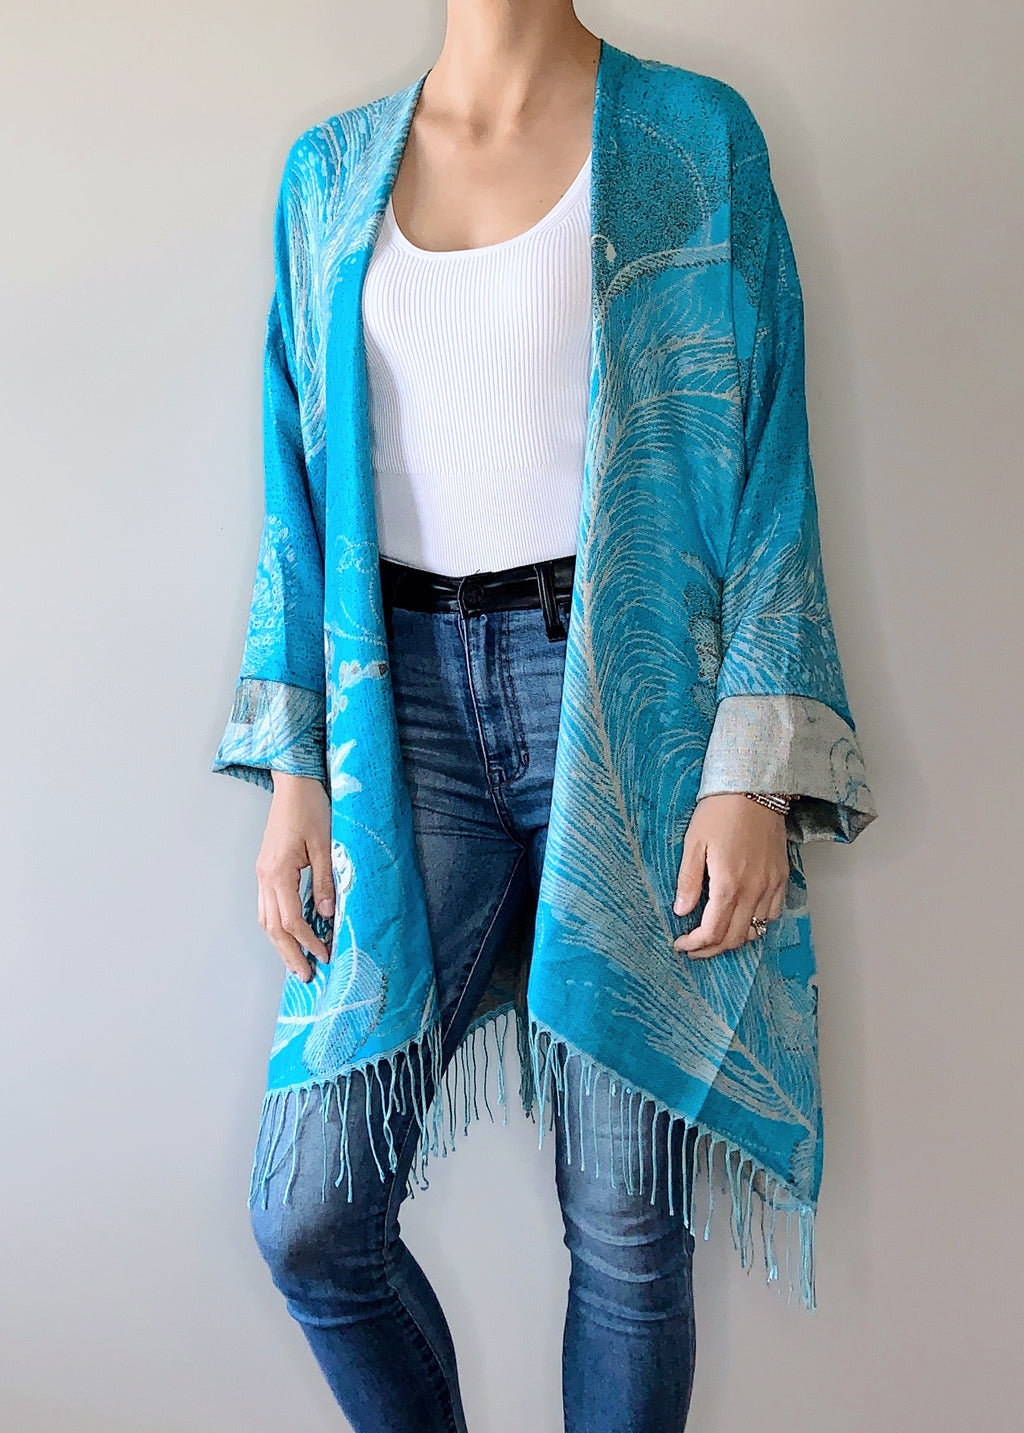 Primrose Boho Jacket in Blue with Cuffs